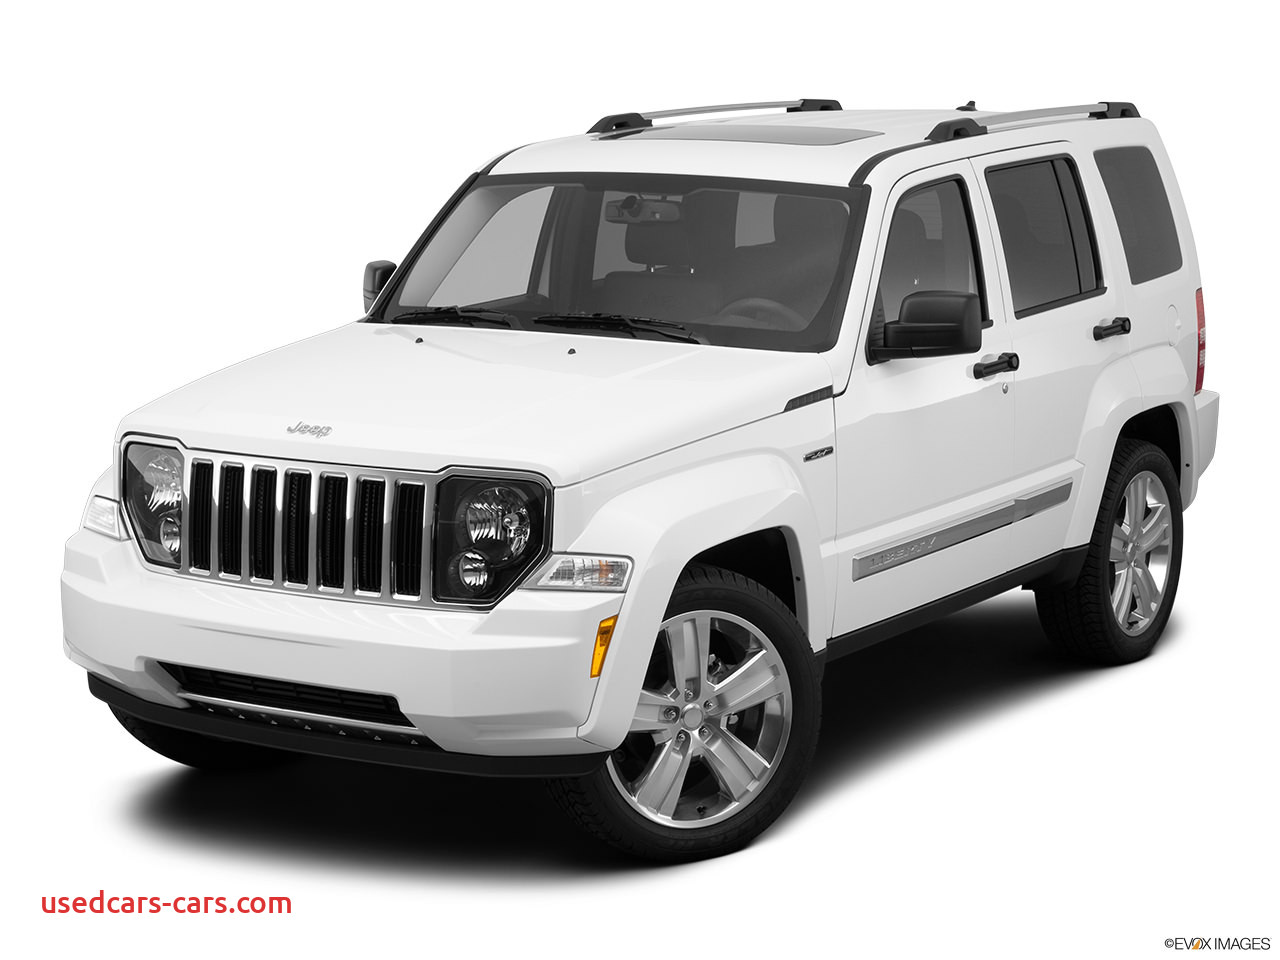 2012 Jeep Liberty Luxury A Buyers Guide to the 2012 Jeep Liberty Yourmechanic Advice